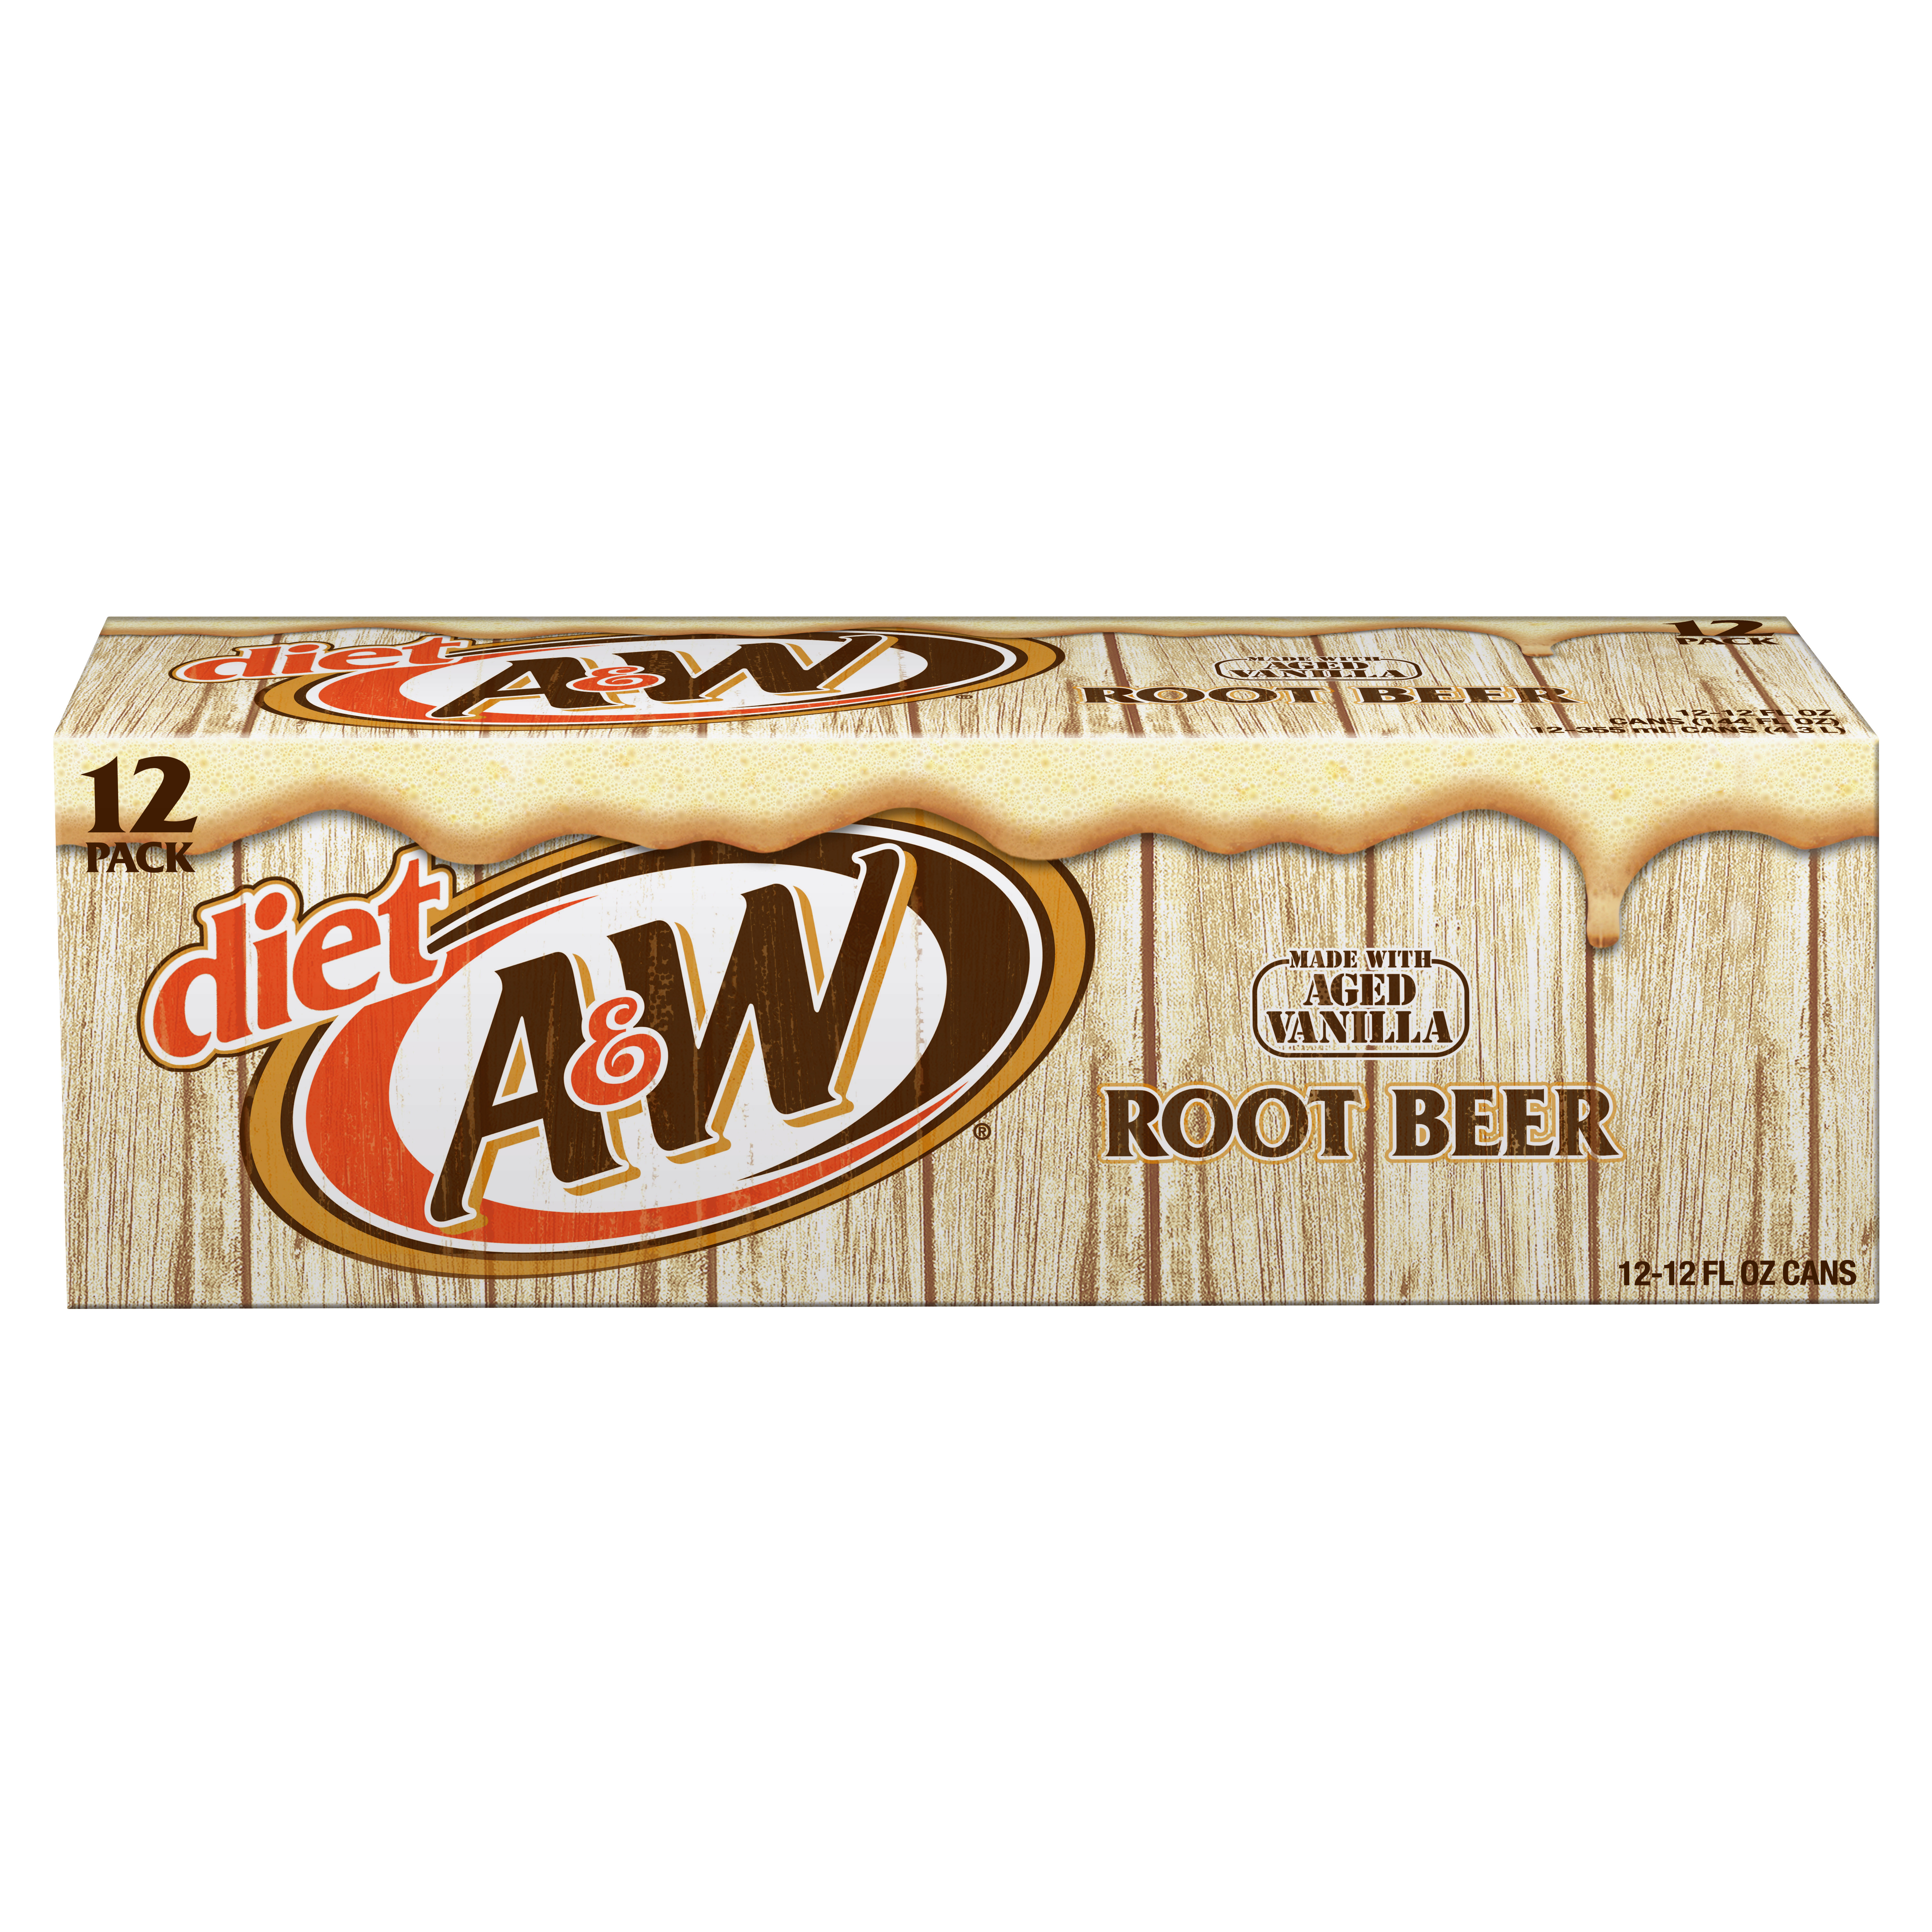 Diet A&W Root Beer, 12 fl oz, 12 pack